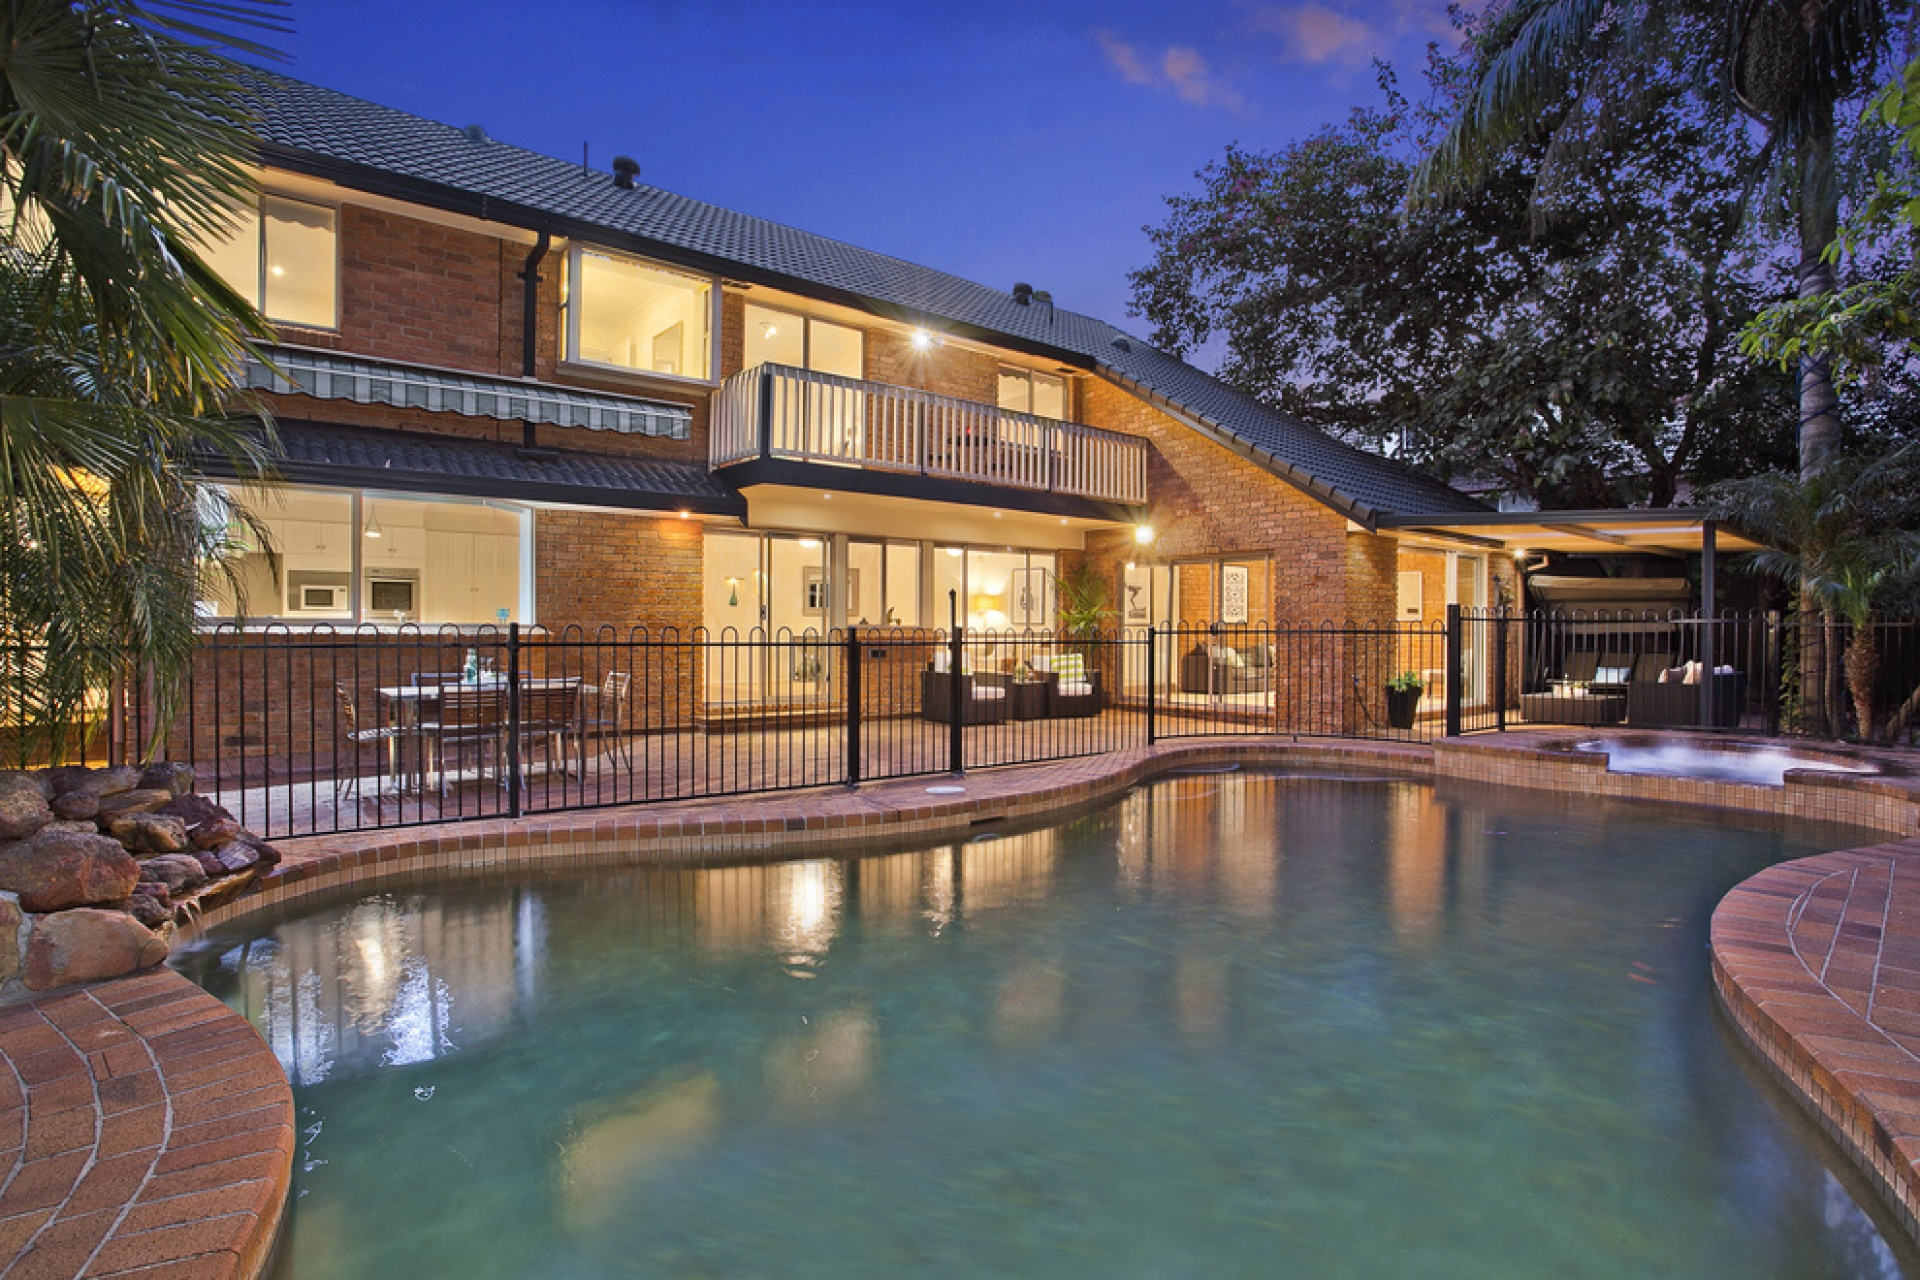 6 Rooms, House, Sold , Featherwood Way, 3 Bathrooms, Listing ID 1103, CASTLE HILL, Australia,